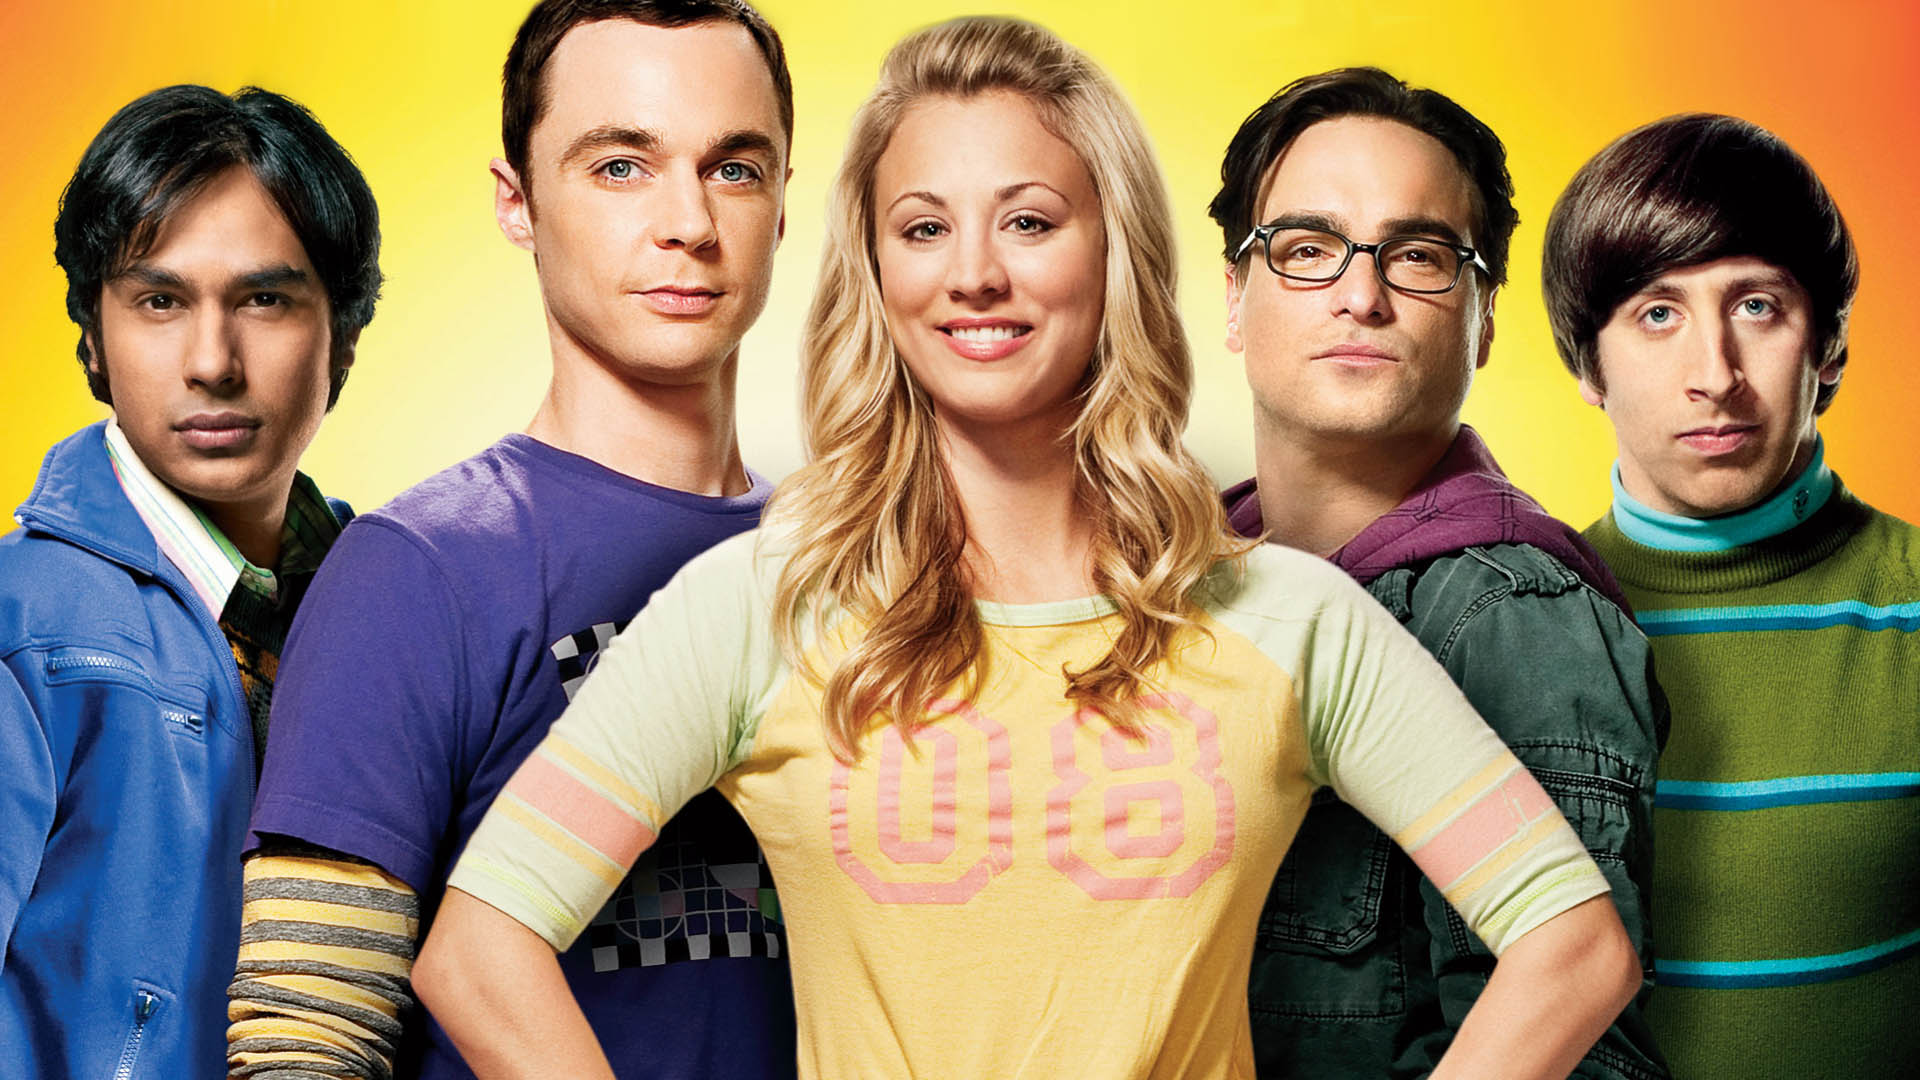 The big bang theory T1-9 Podcast – PREVIOUSLY ON S03E10